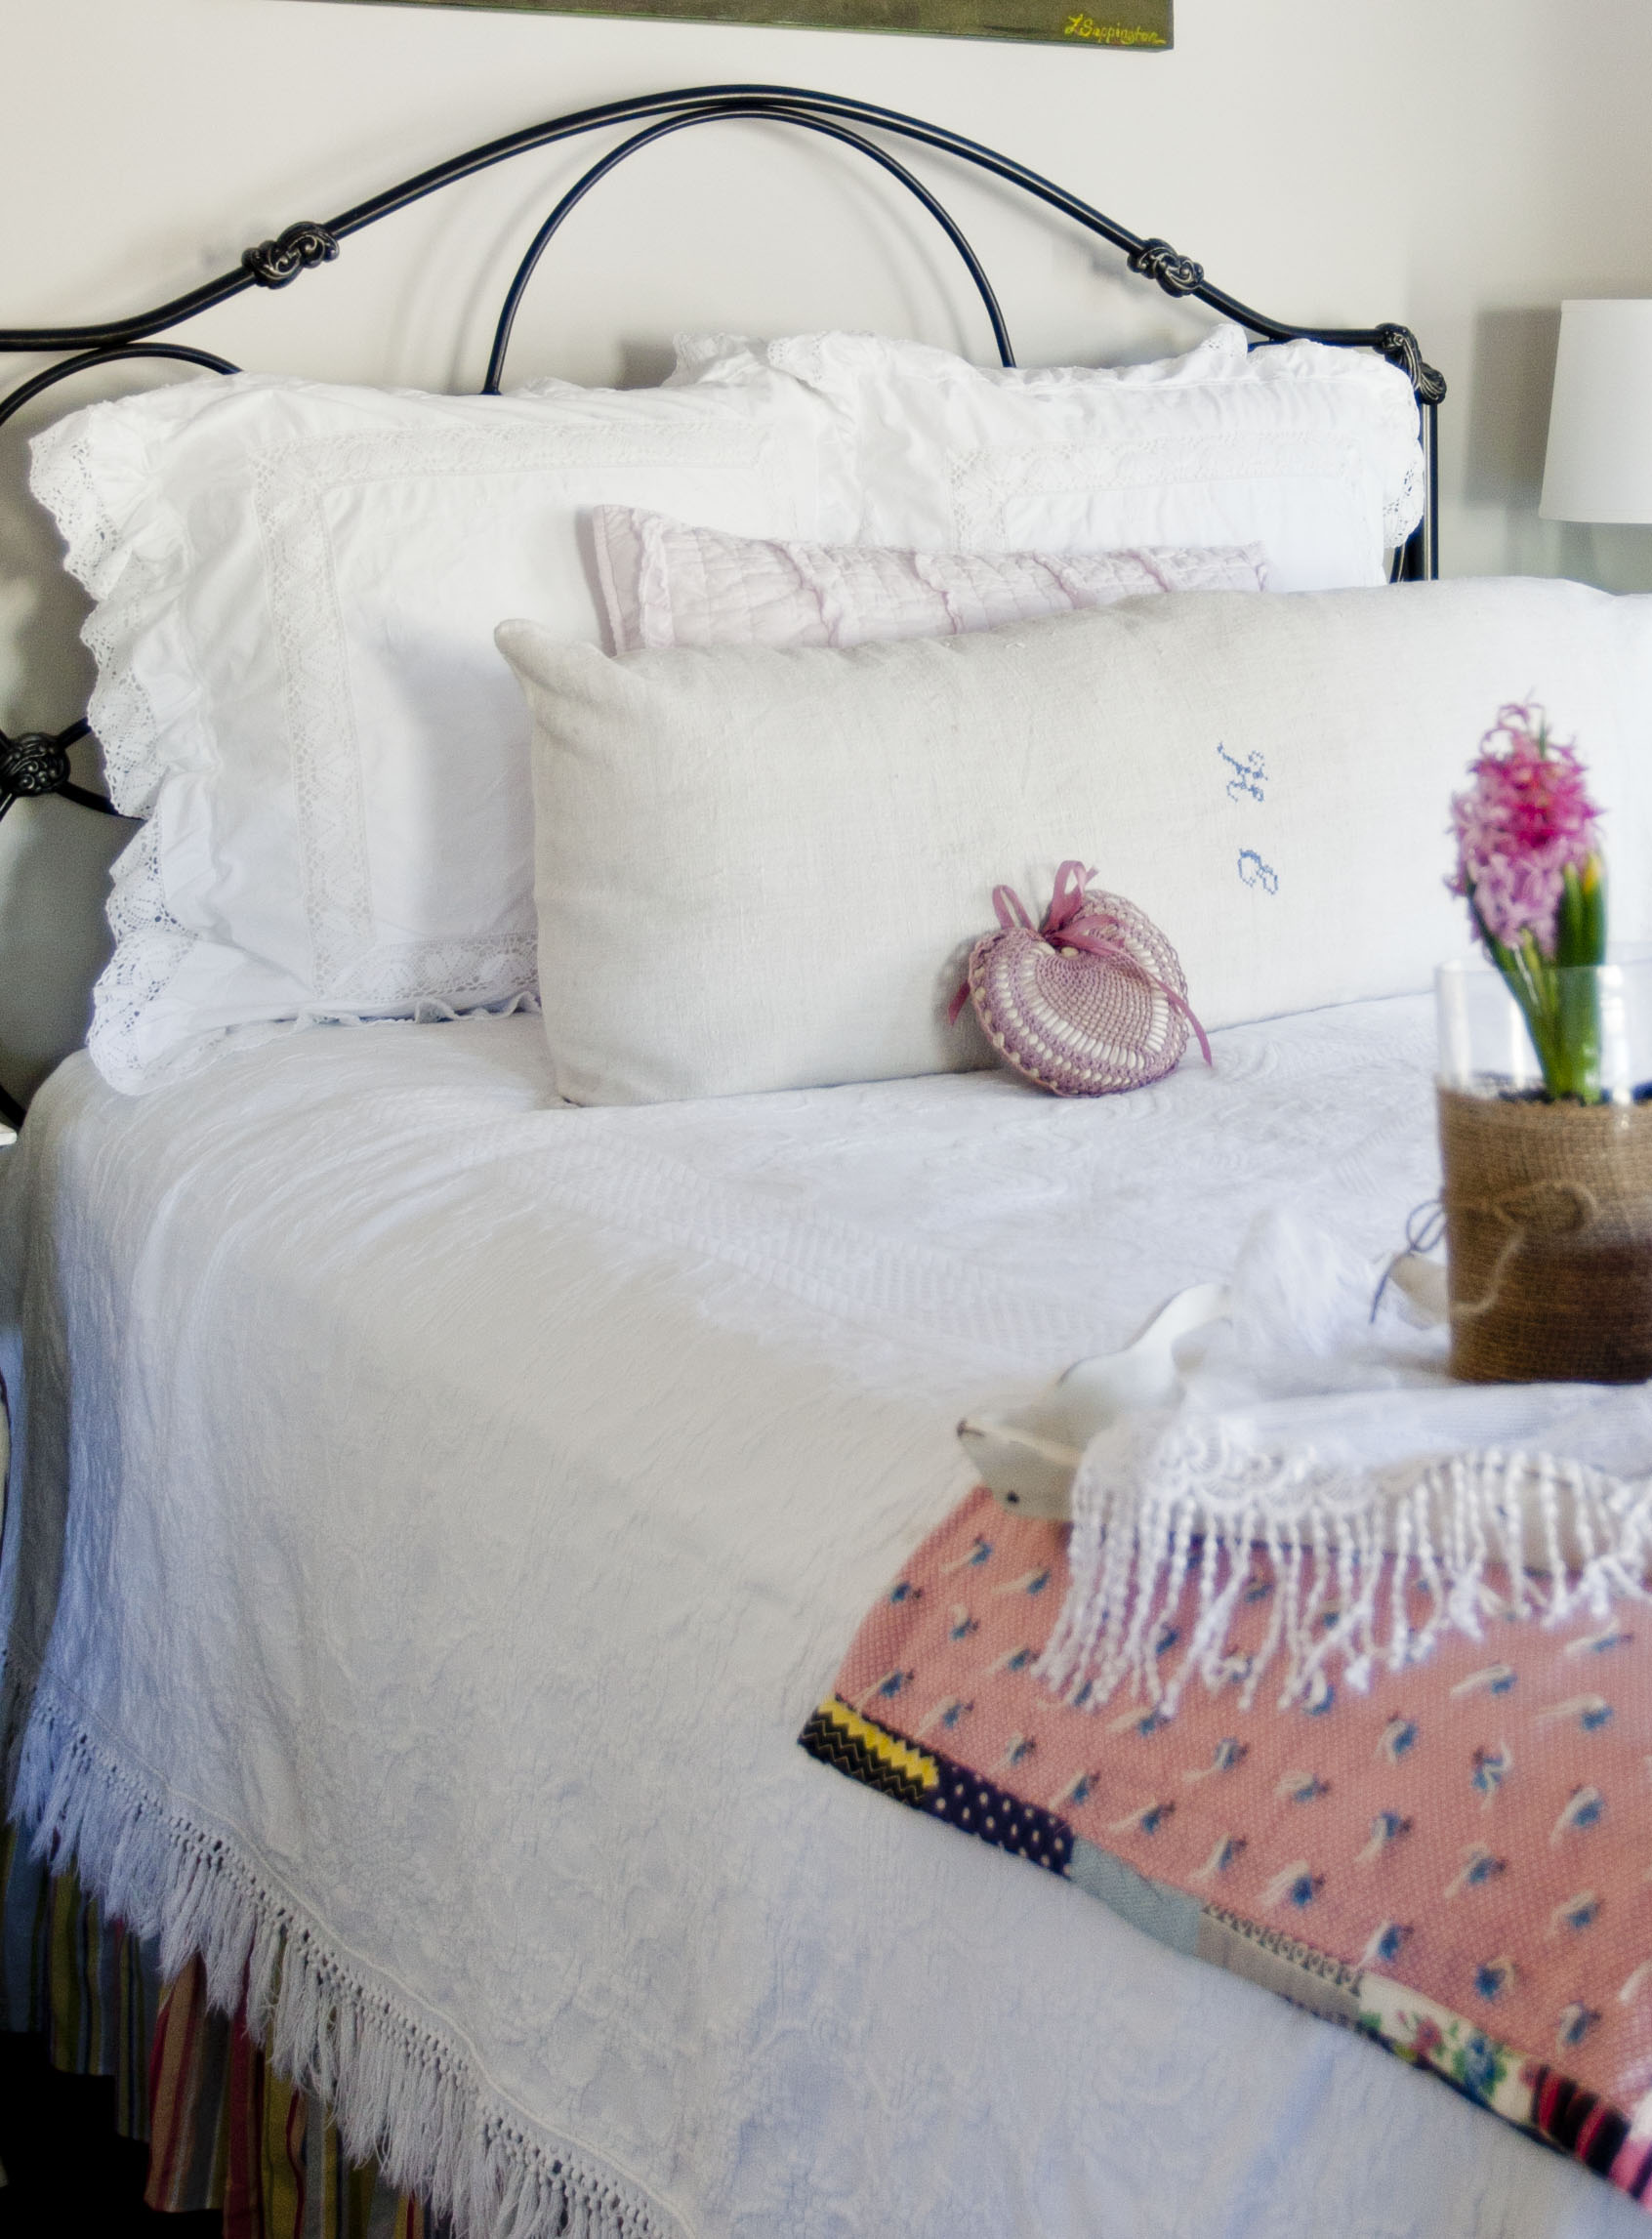 Cute Below the pillow shams are vintage cotton shams I thought they were so charming The bedspread below is vintage cotton